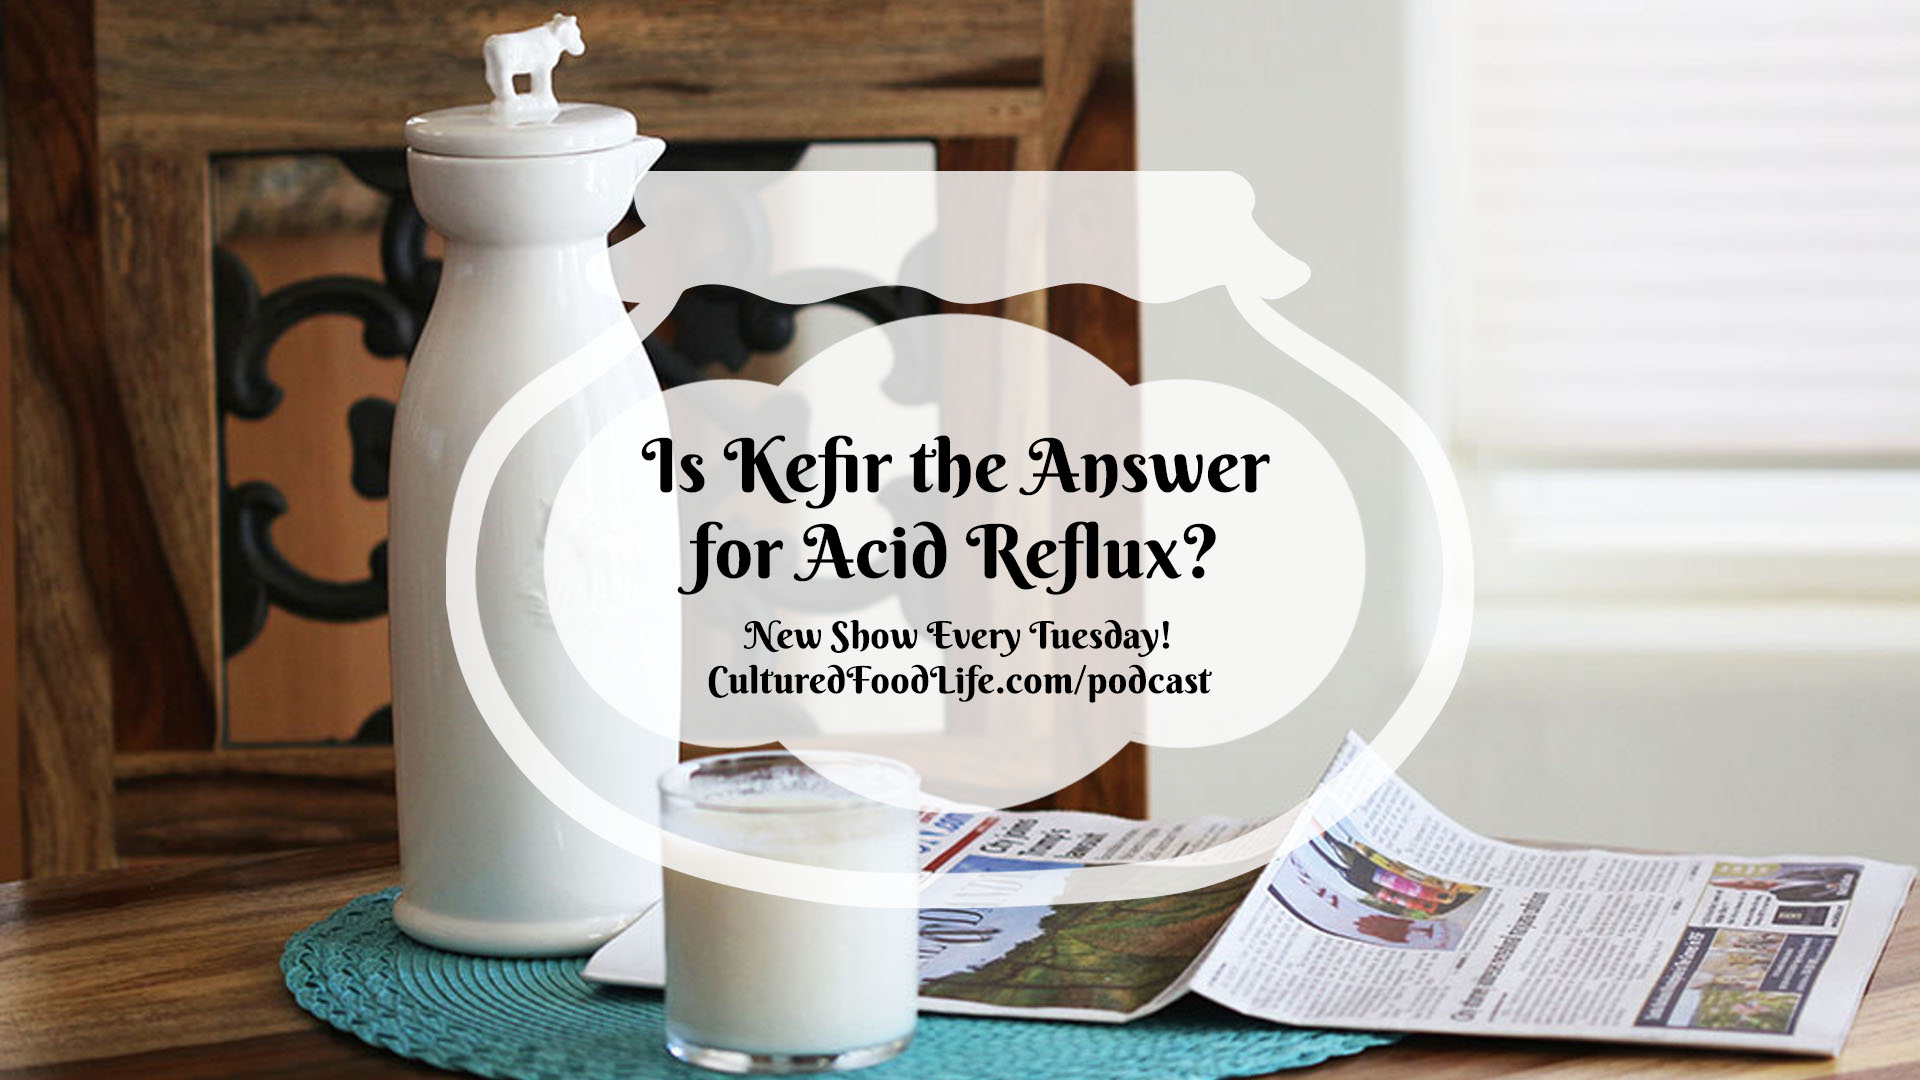 Is Kefir the Answer for Acid Reflux